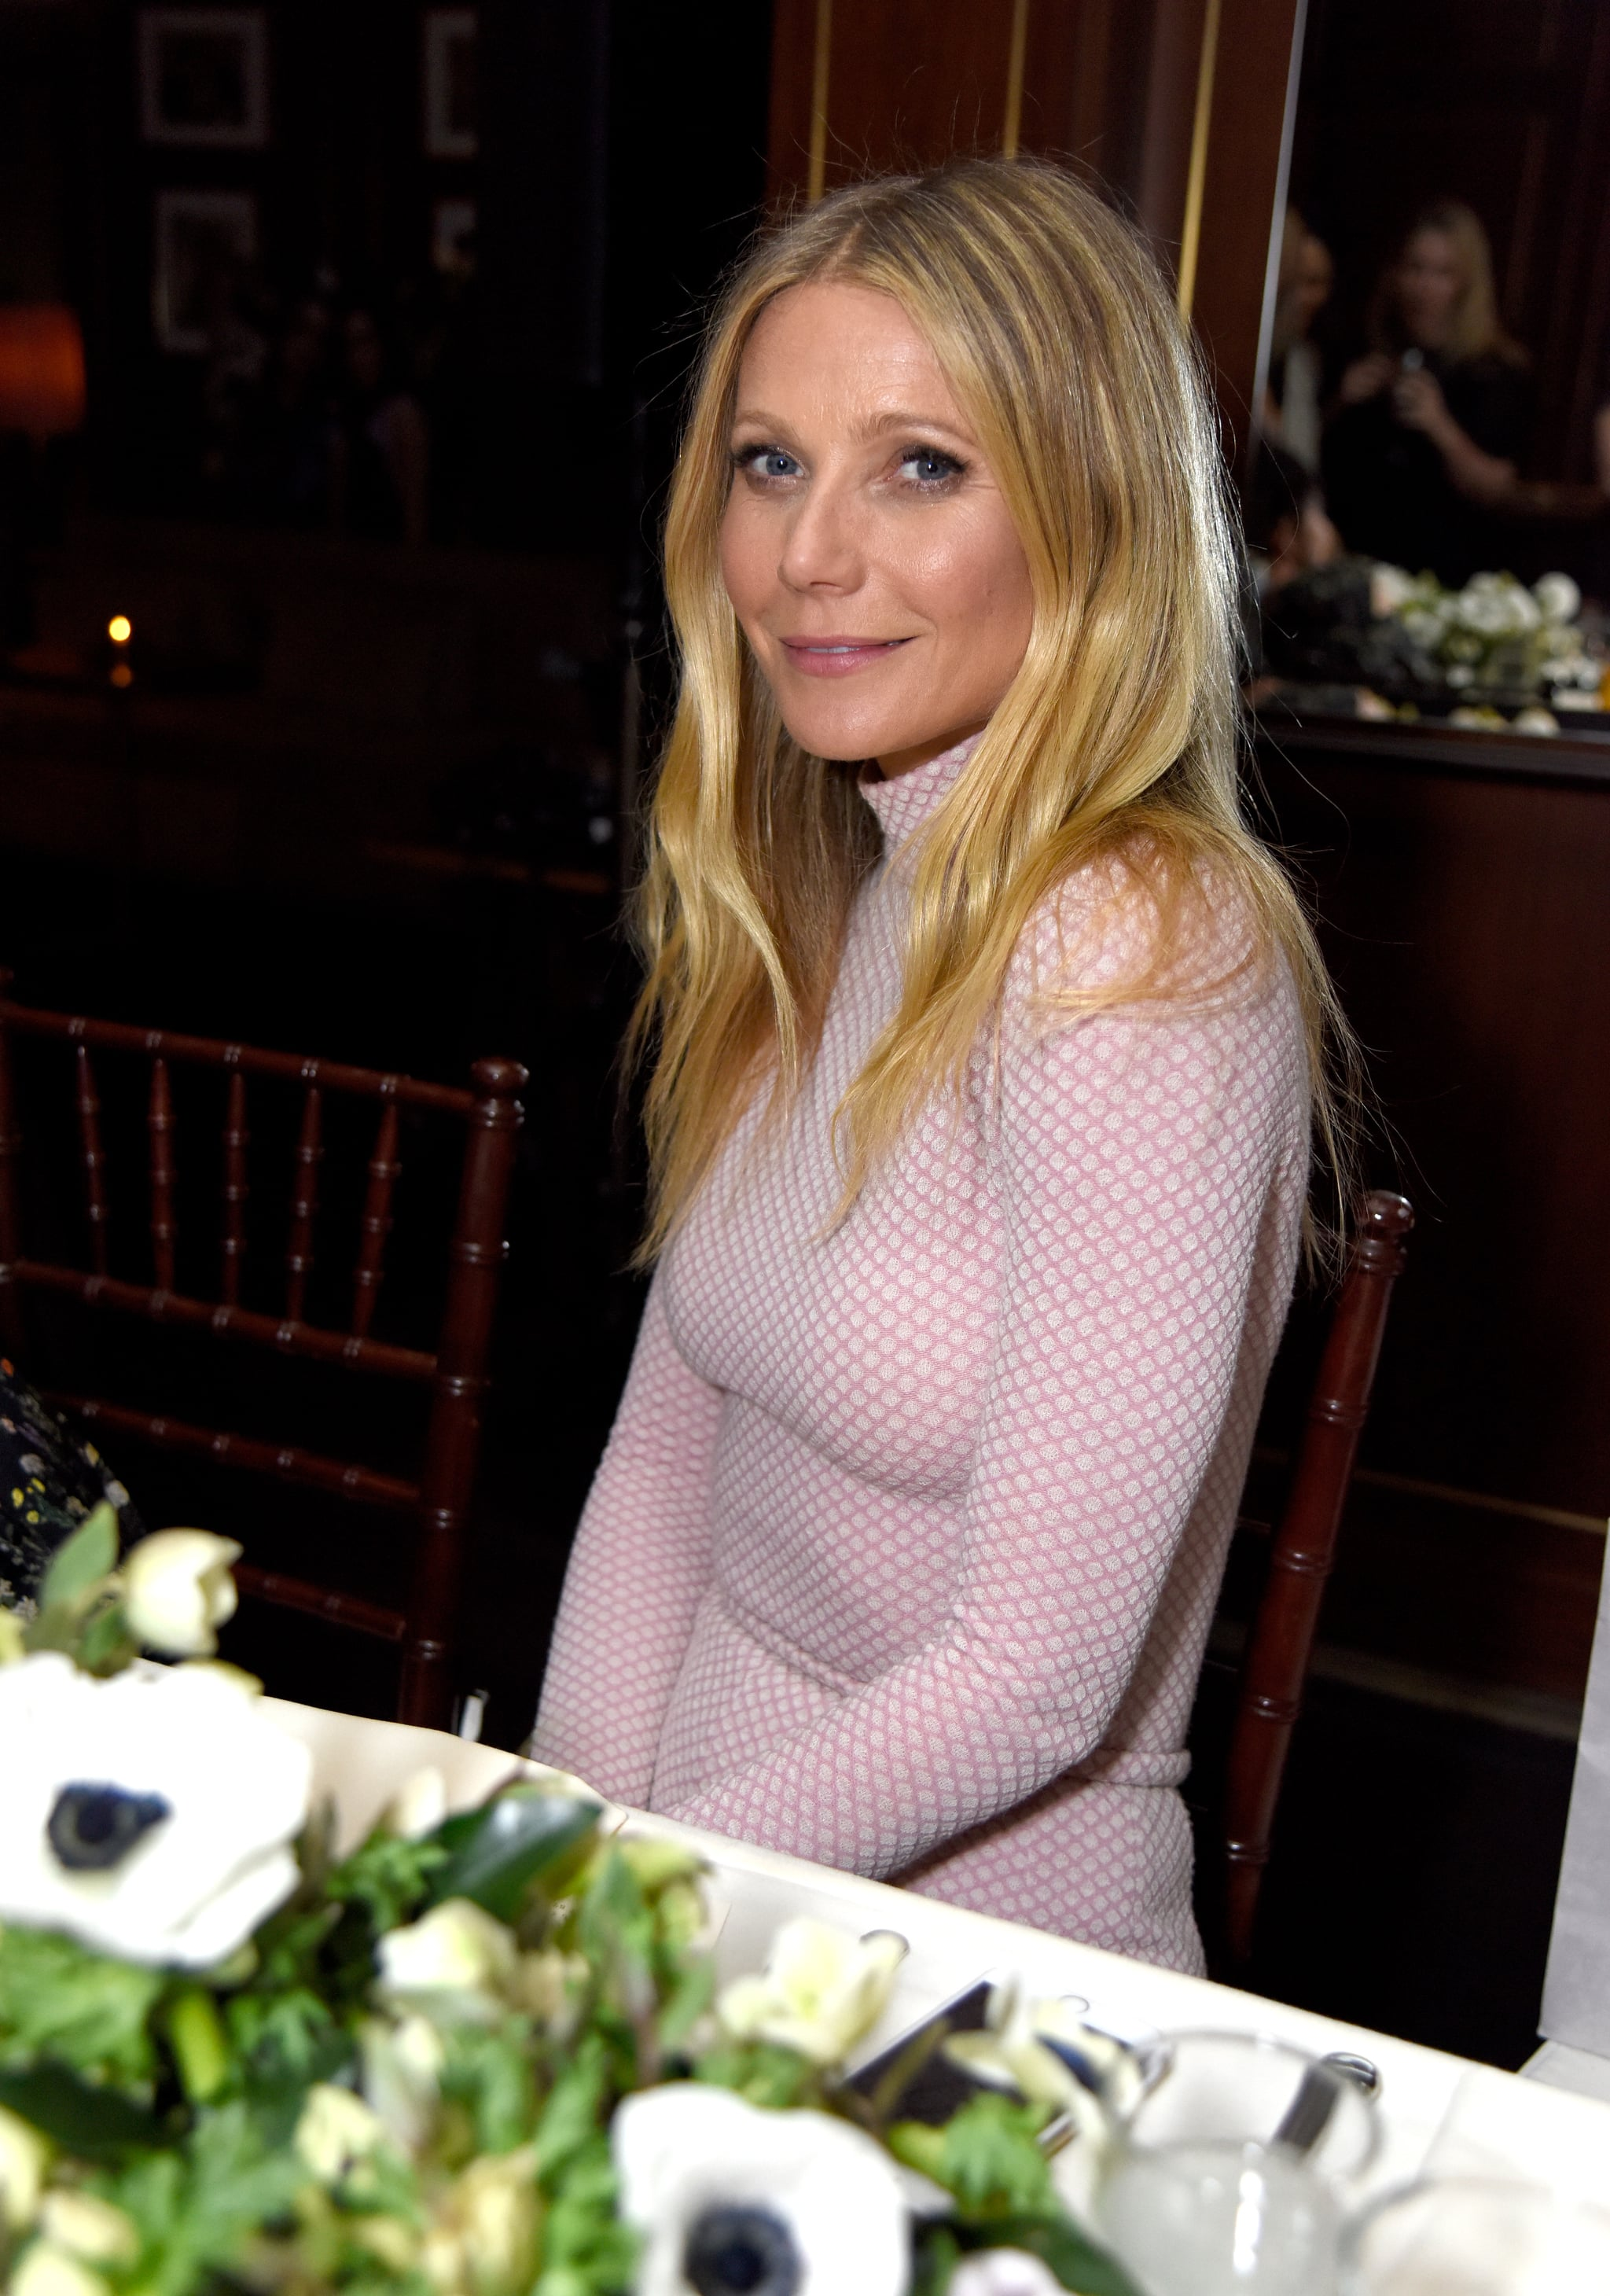 LOS ANGELES, CALIFORNIA - MARCH 15: Actress Gwyneth Paltrow attends The Hollywood Reporter and Jimmy Choo's Power Stylists Dinner at Sunset Tower on March 15, 2016 in Los Angeles, California.  (Photo by Jeff Vespa/Getty Images for The Hollywood Reporter)